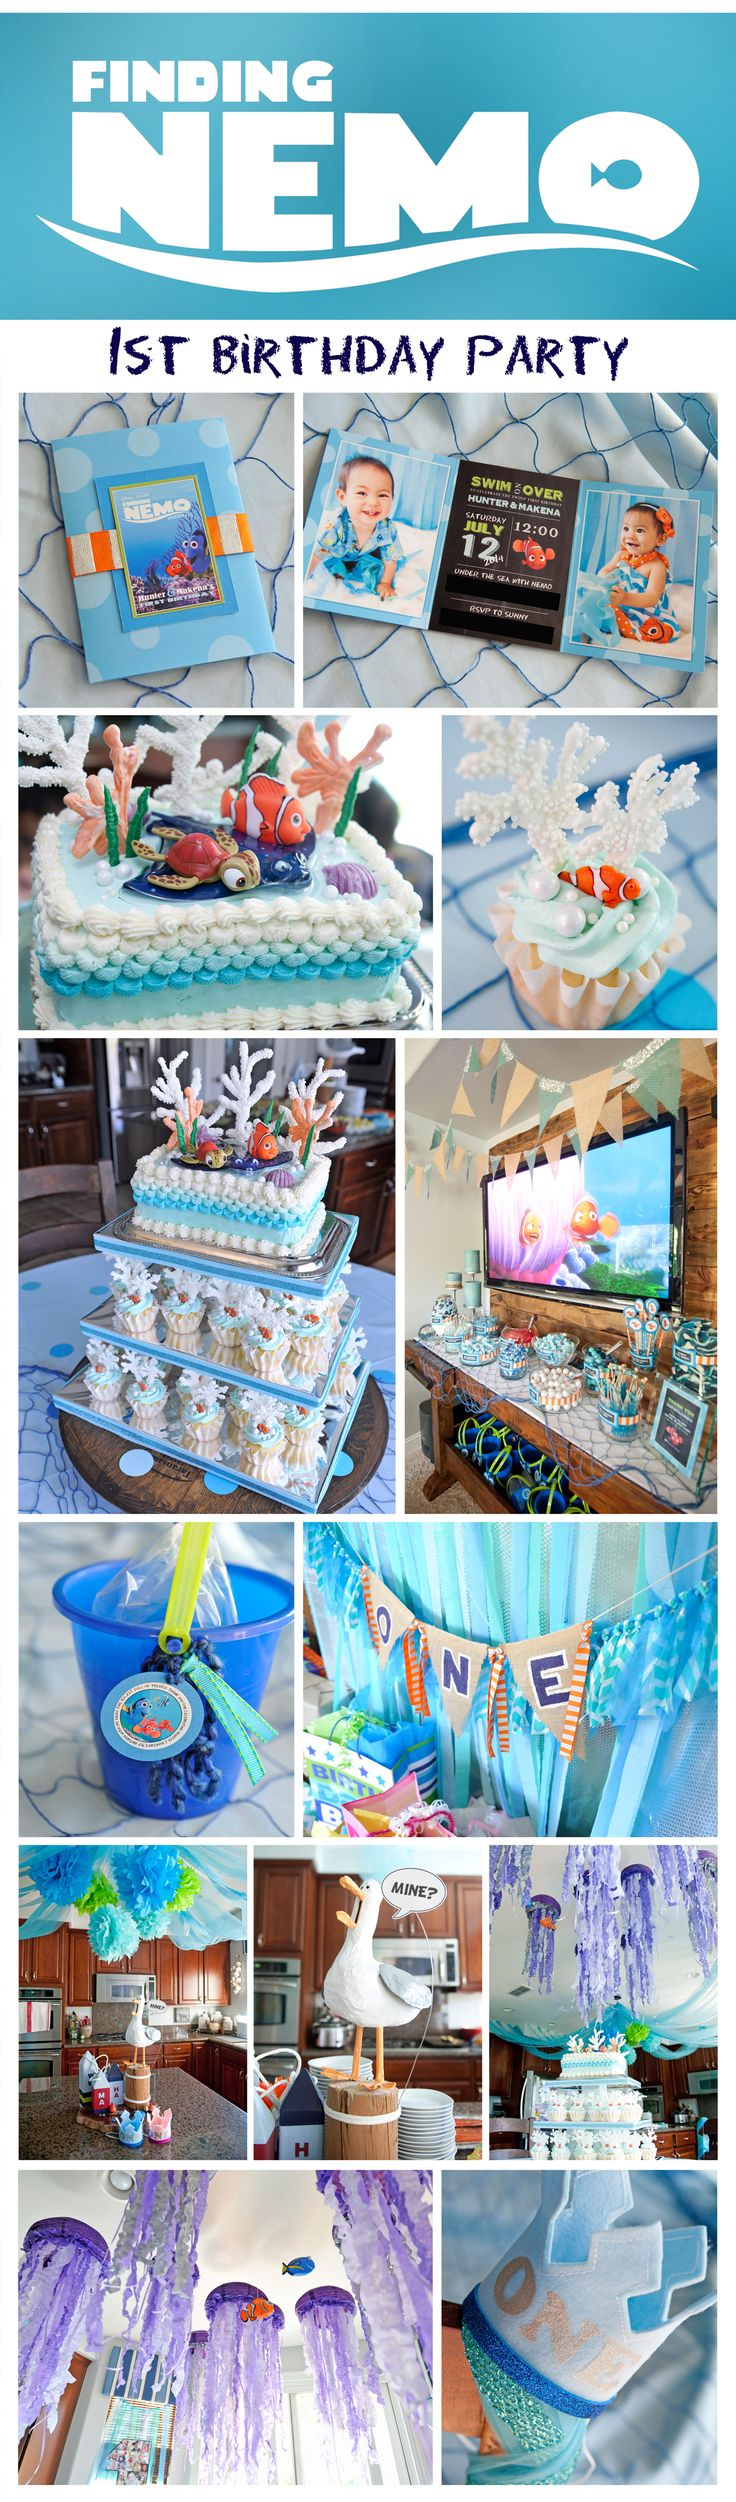 Finding Nemo Birthday Party | Under the Sea Adventure